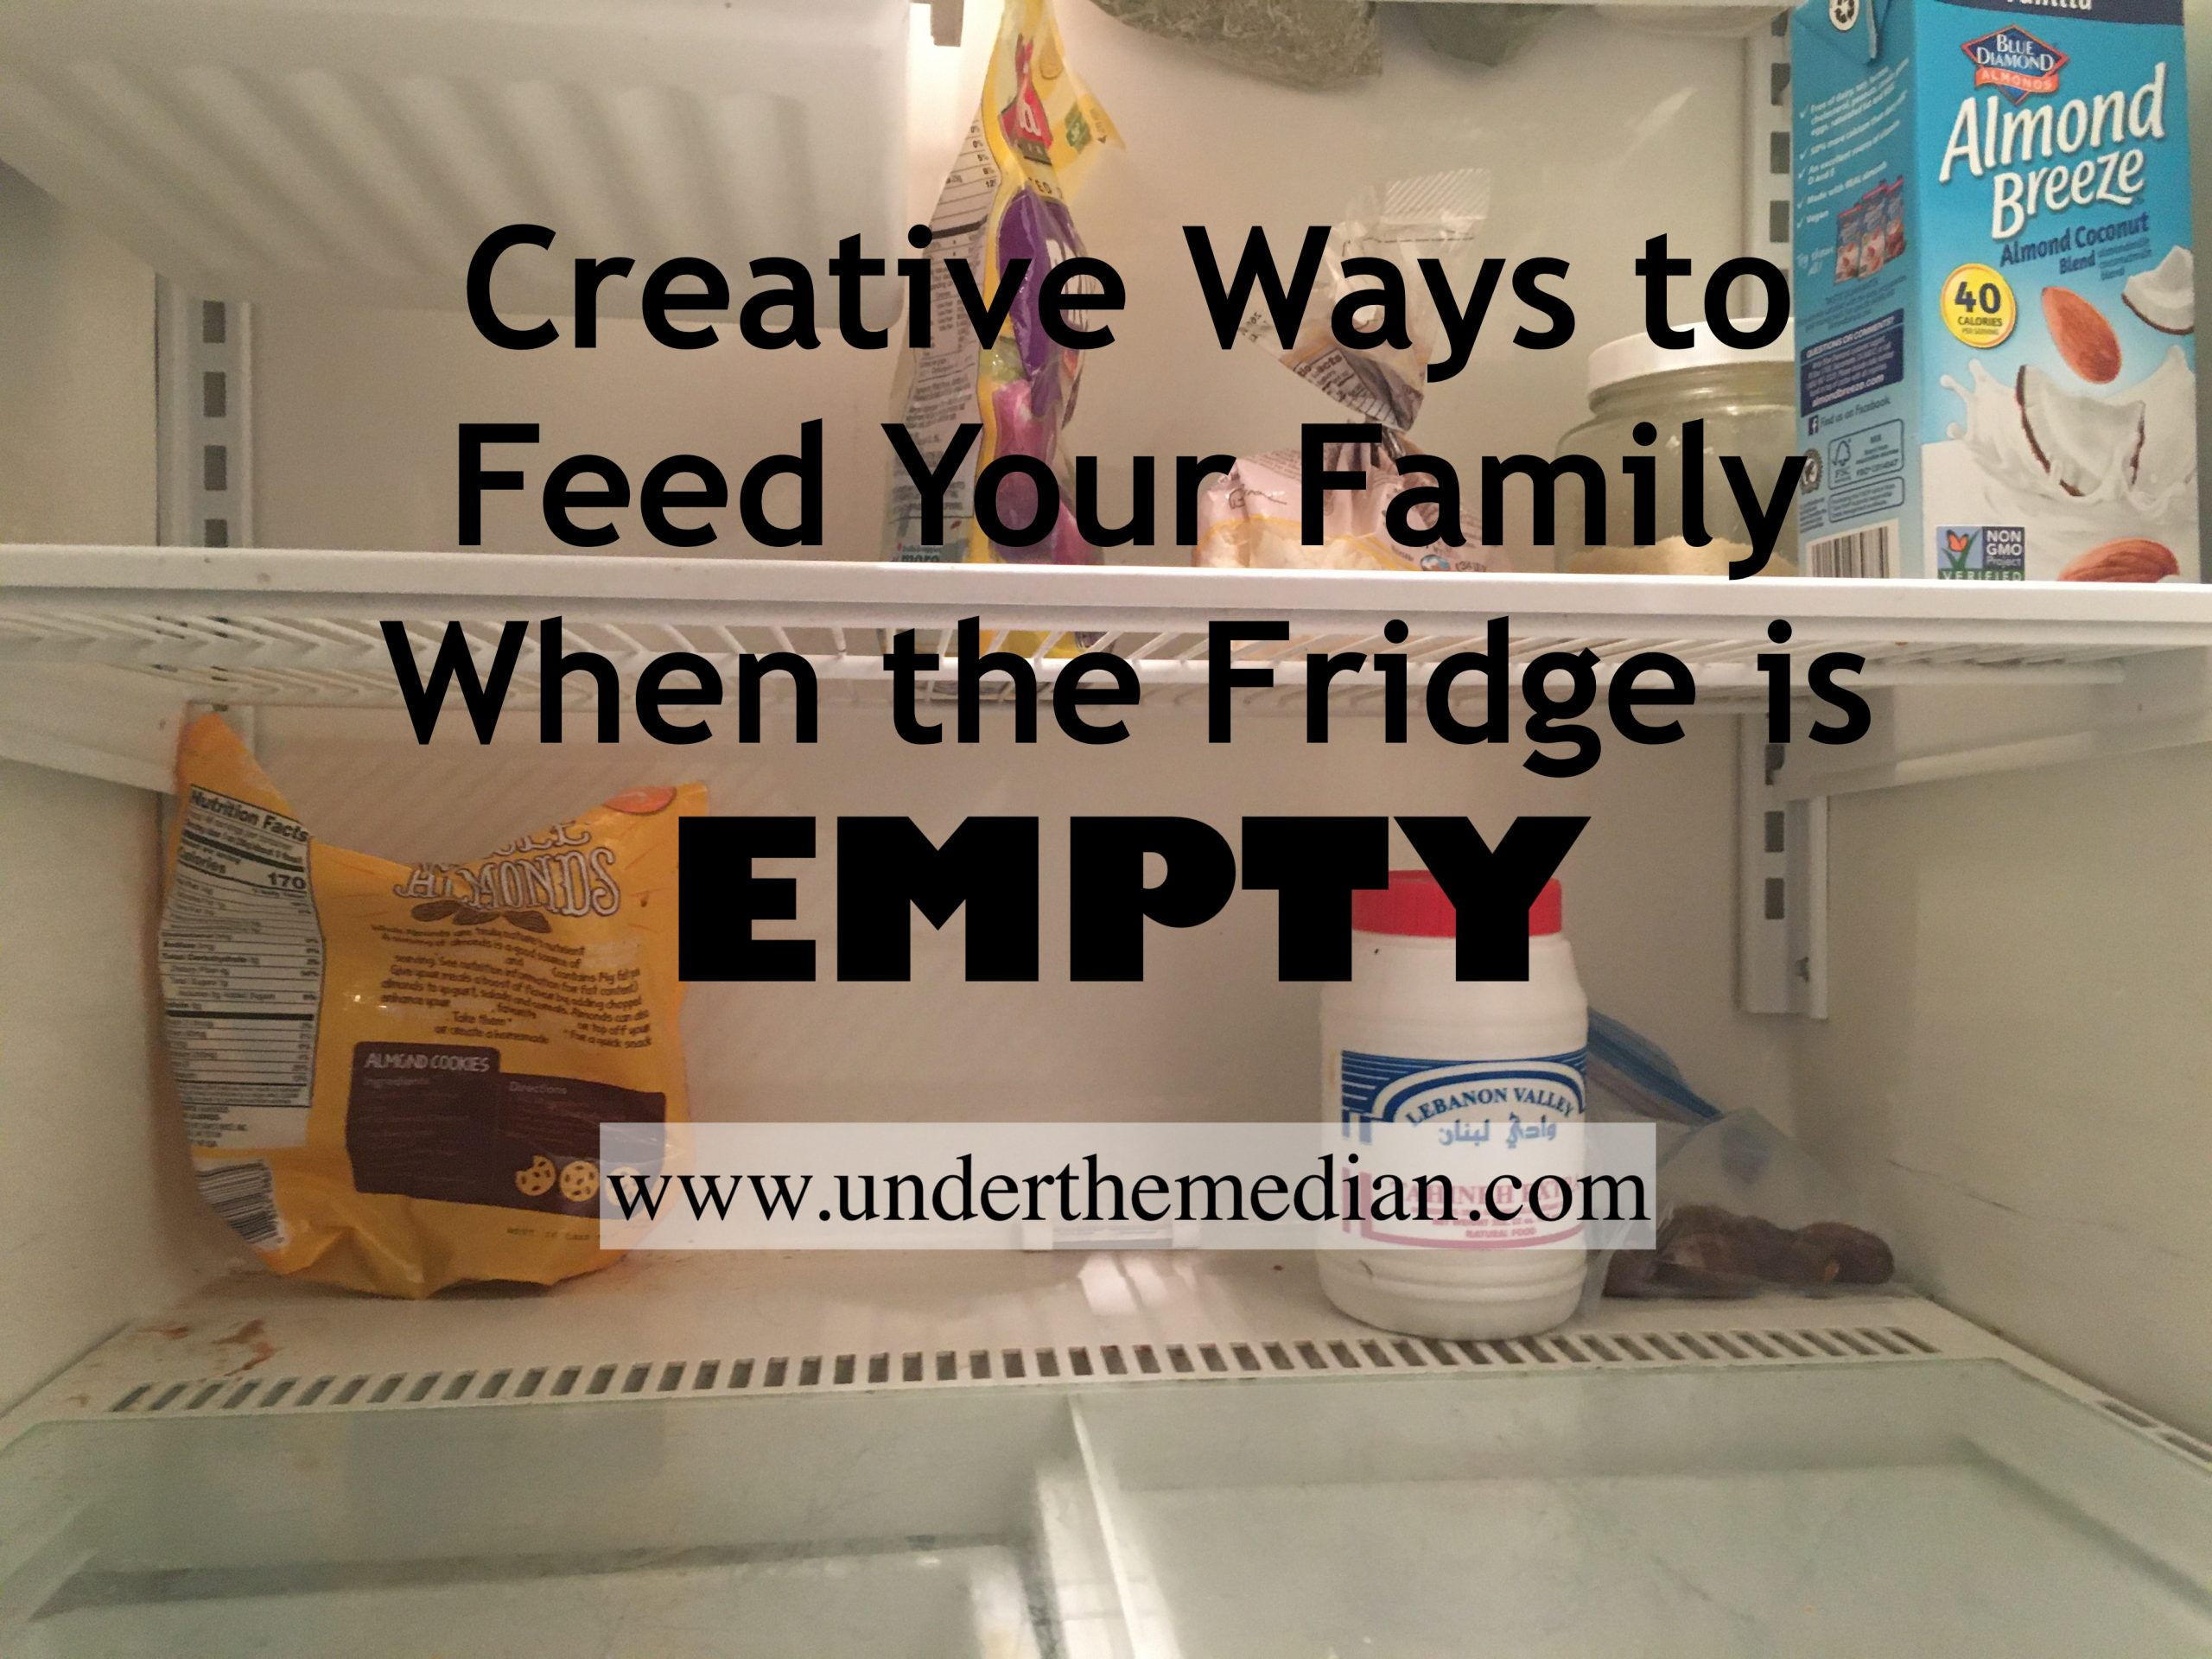 Creative Ways to Feed Your Family when the Fridge is Empty